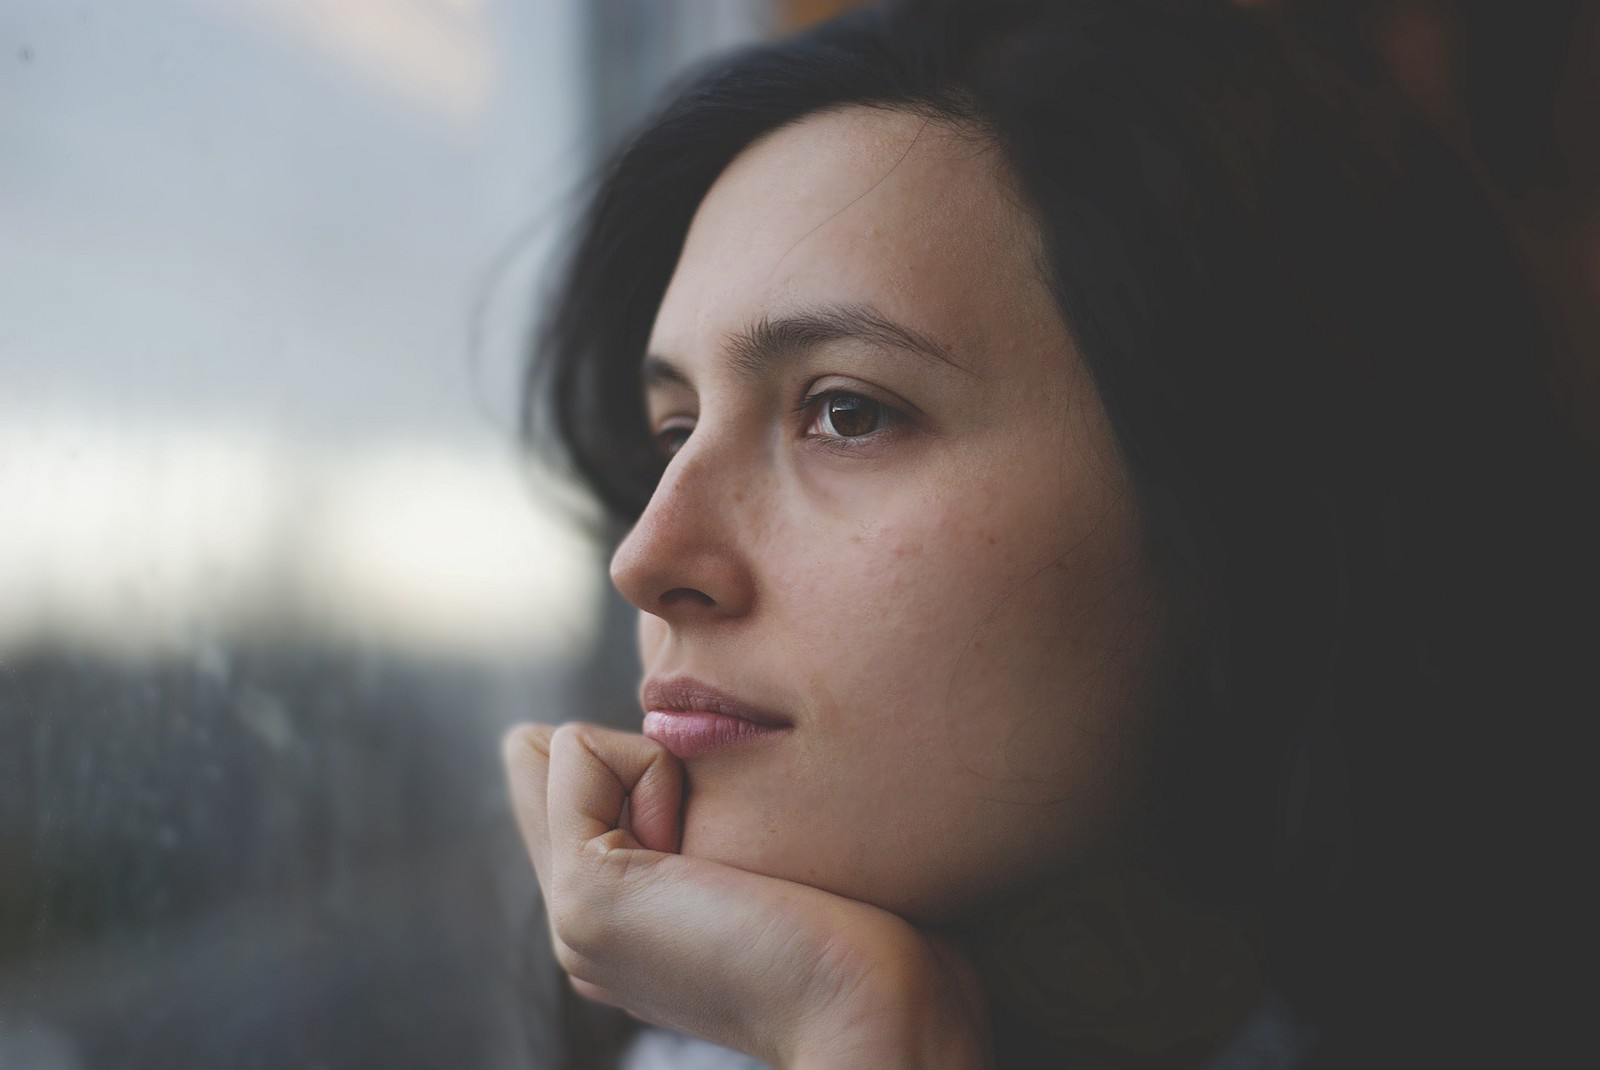 How To Quiet Negative Thoughts In Less Than 5 Minutes